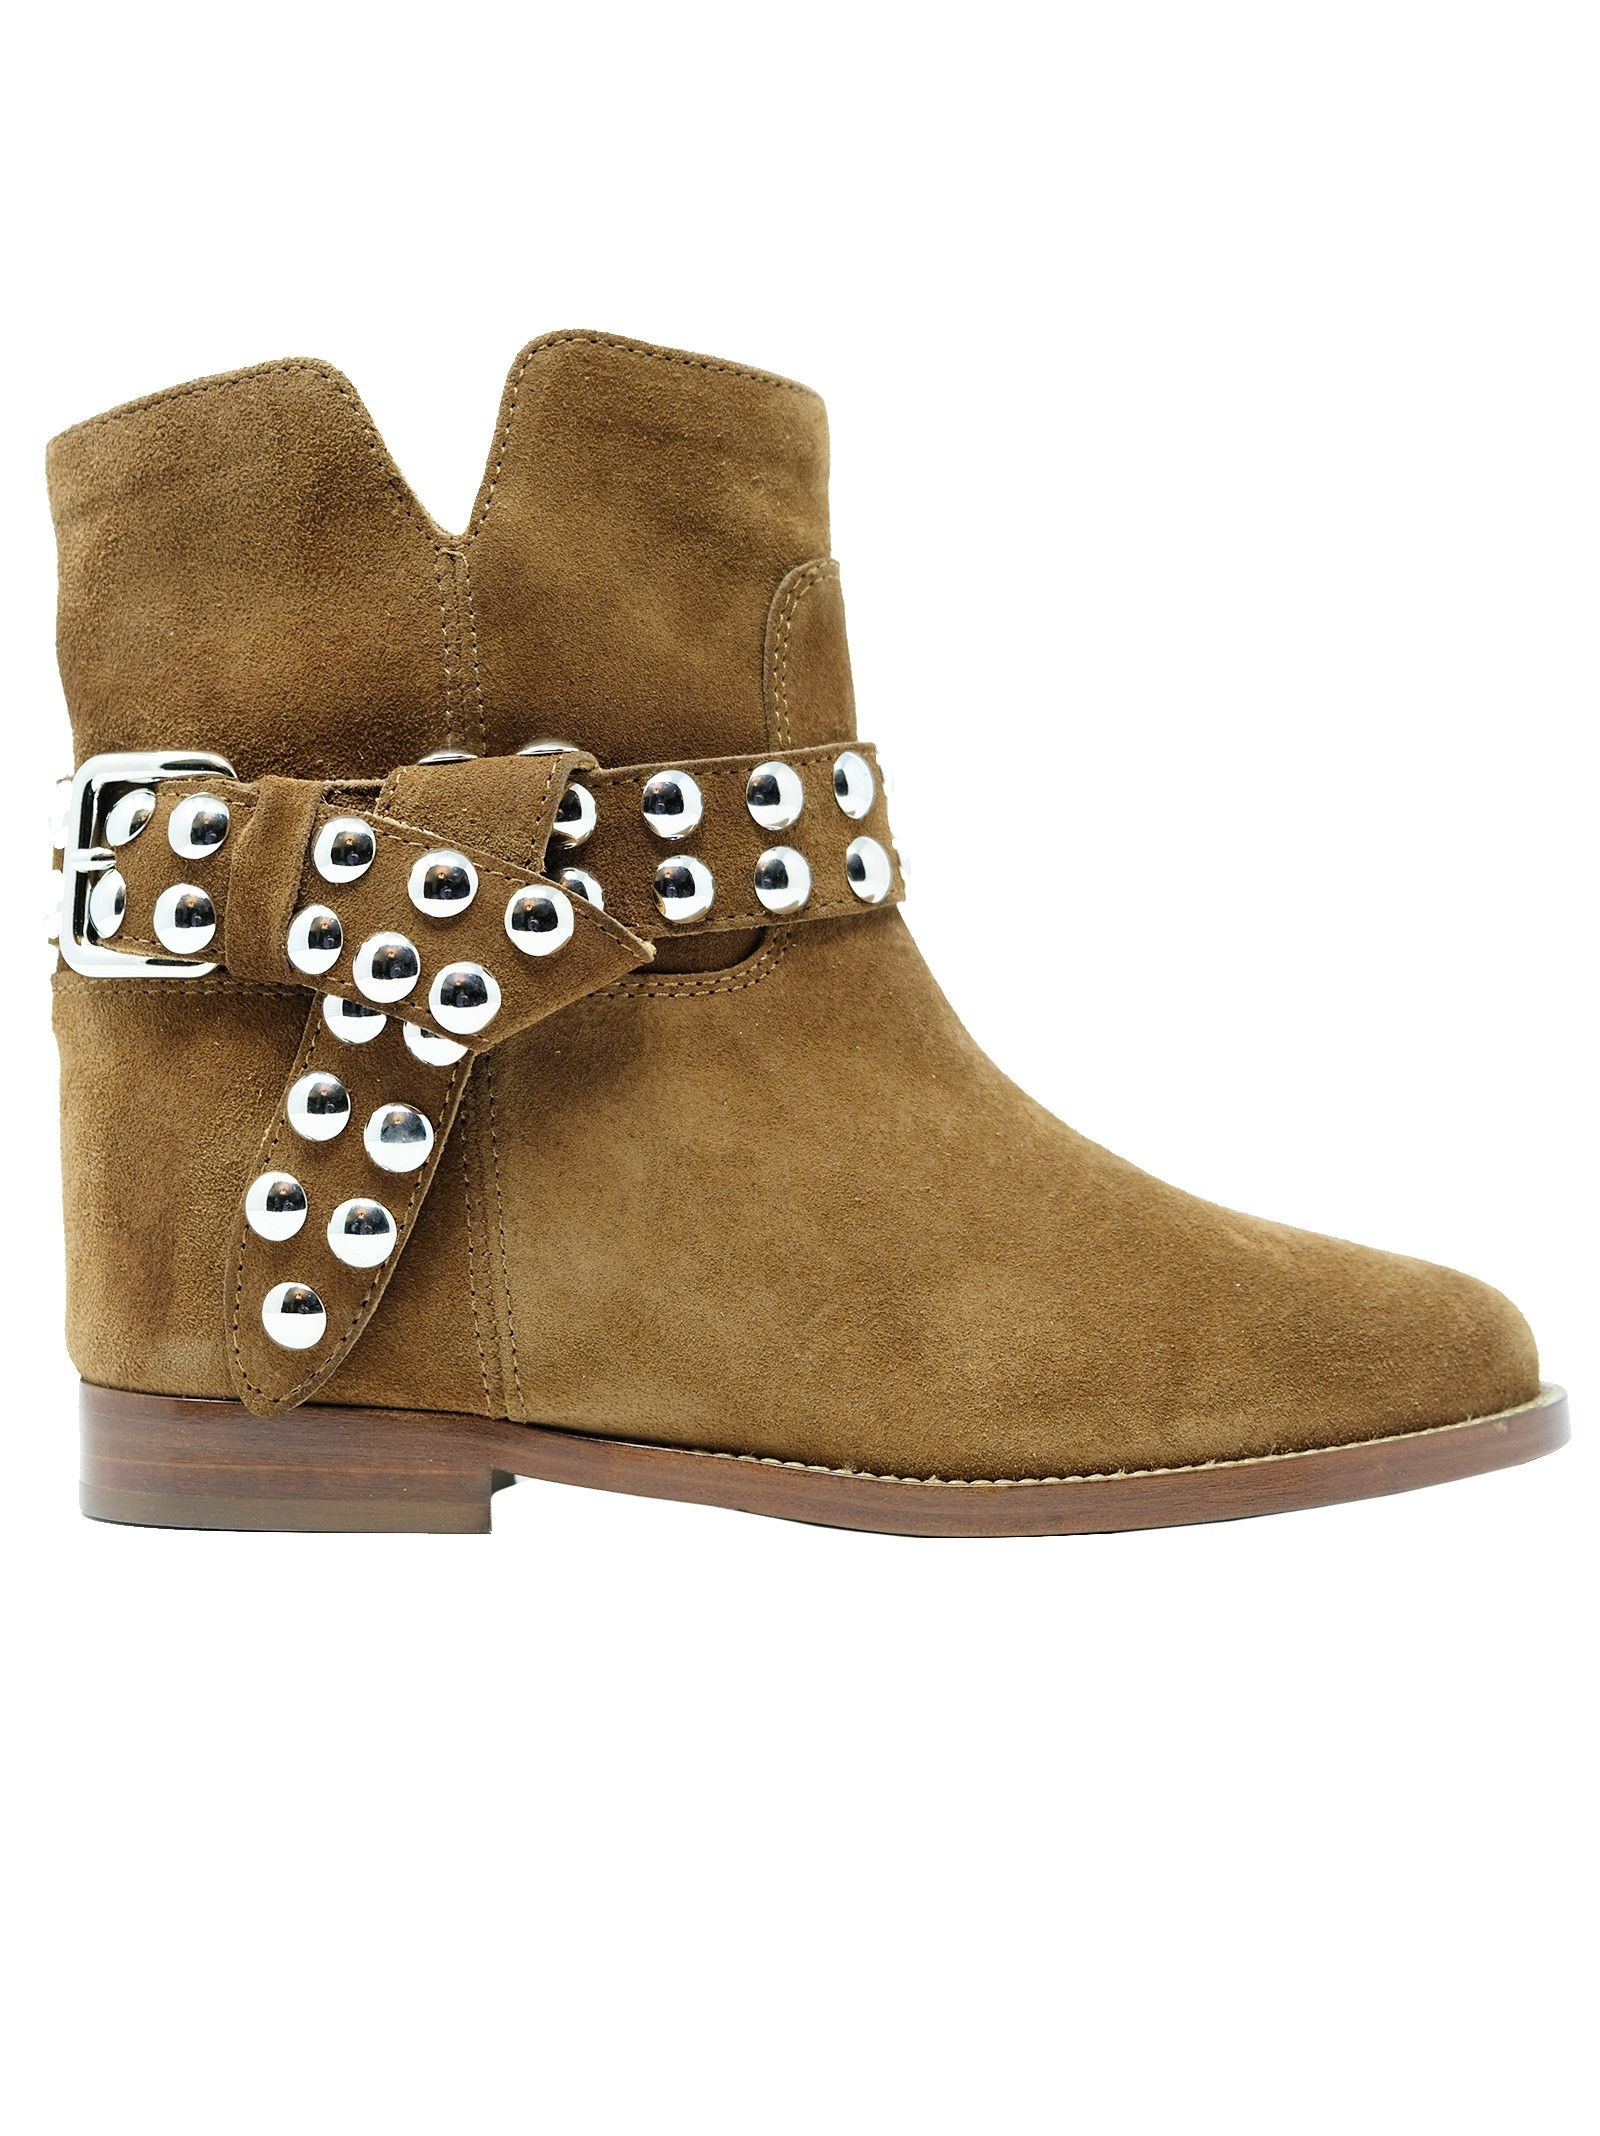 Via Roma 15 VIA ROMA 15 WOMEN'S 35462BROWN BROWN SUEDE ANKLE BOOTS